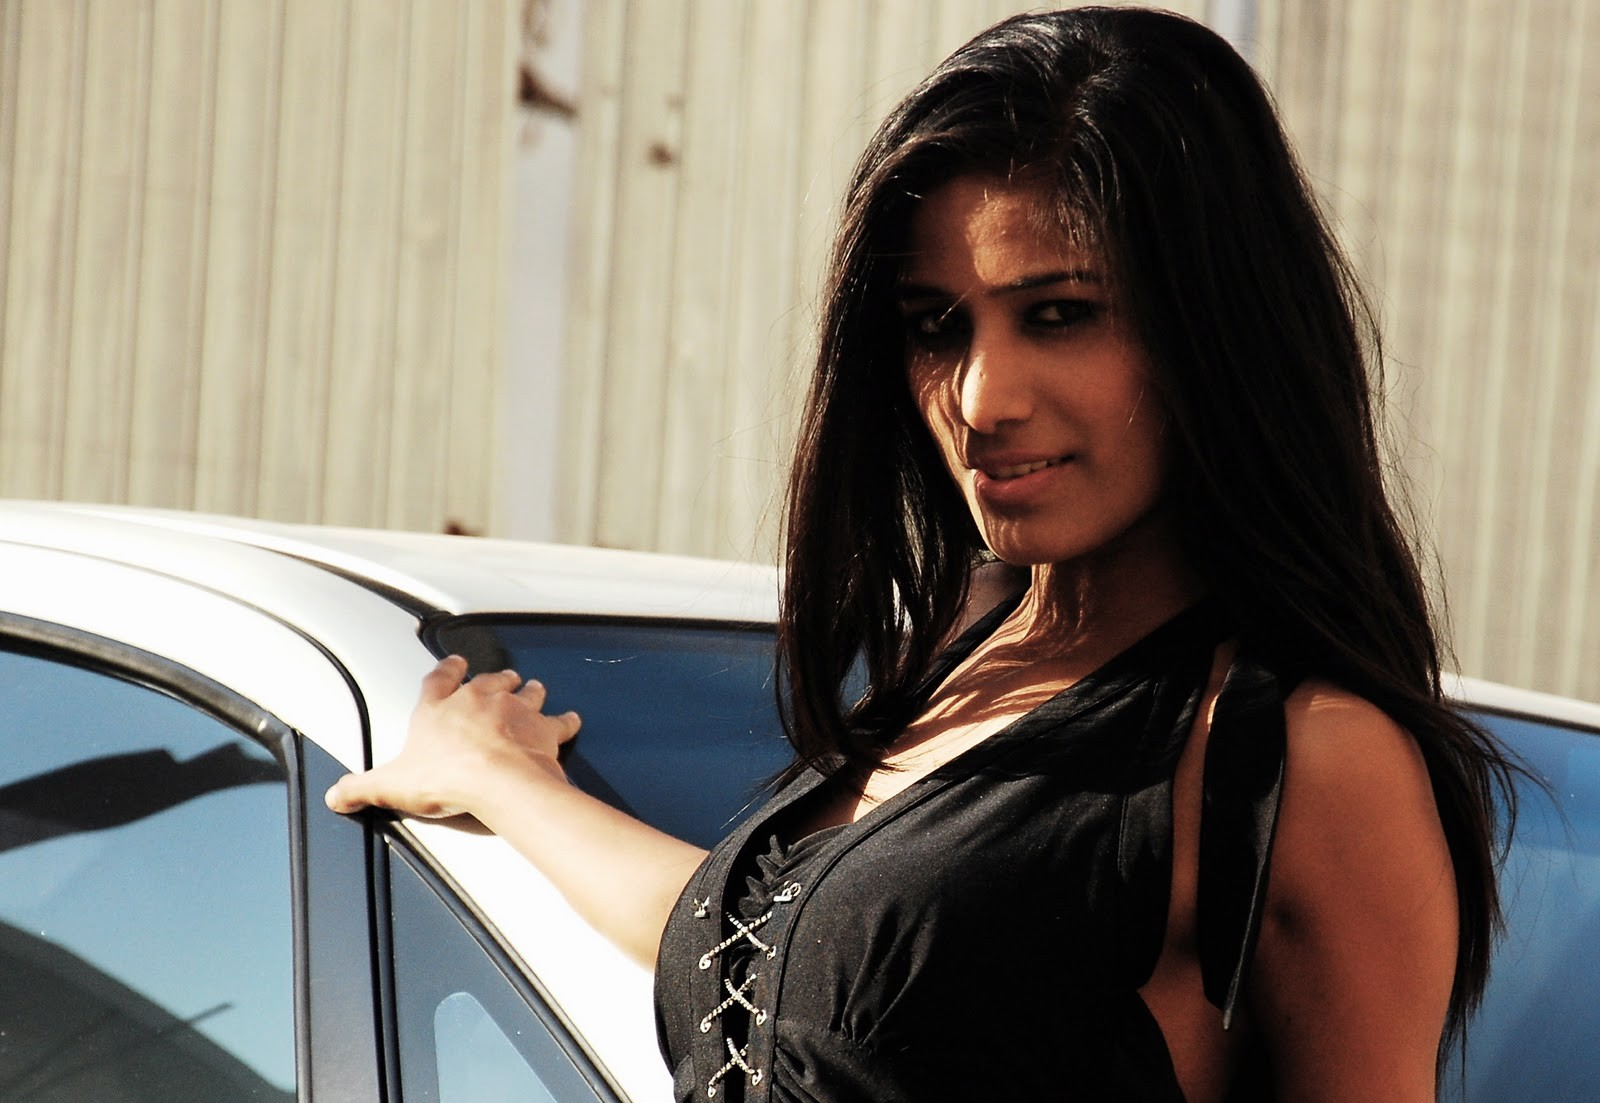 model poonam pandey photography gallery